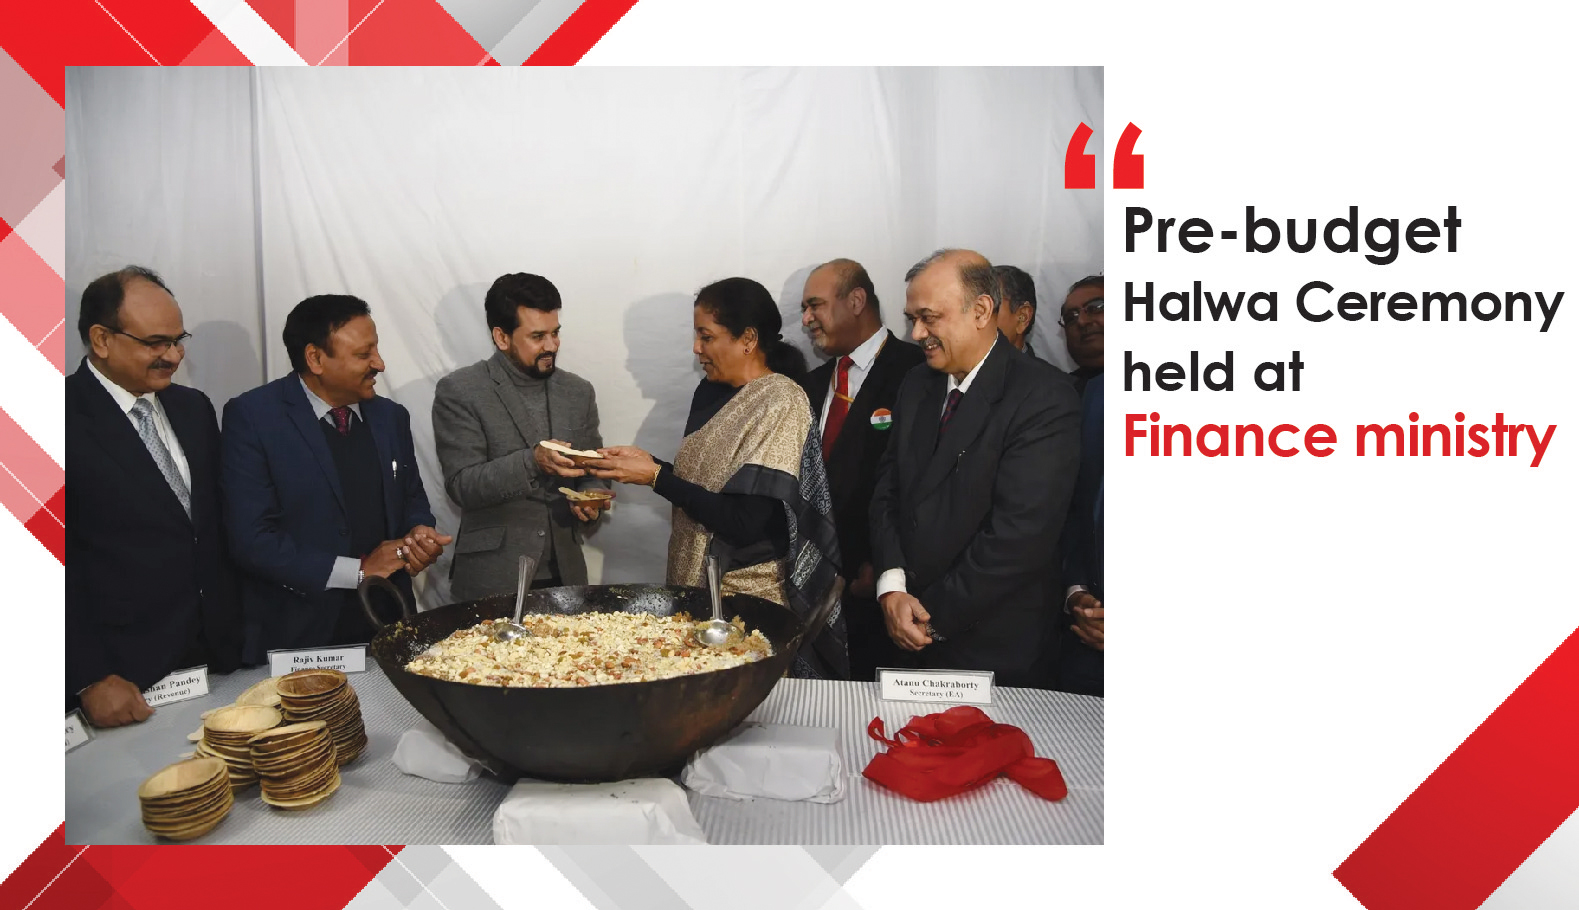 Pre-budget Halwa Ceremony held at Finance ministry